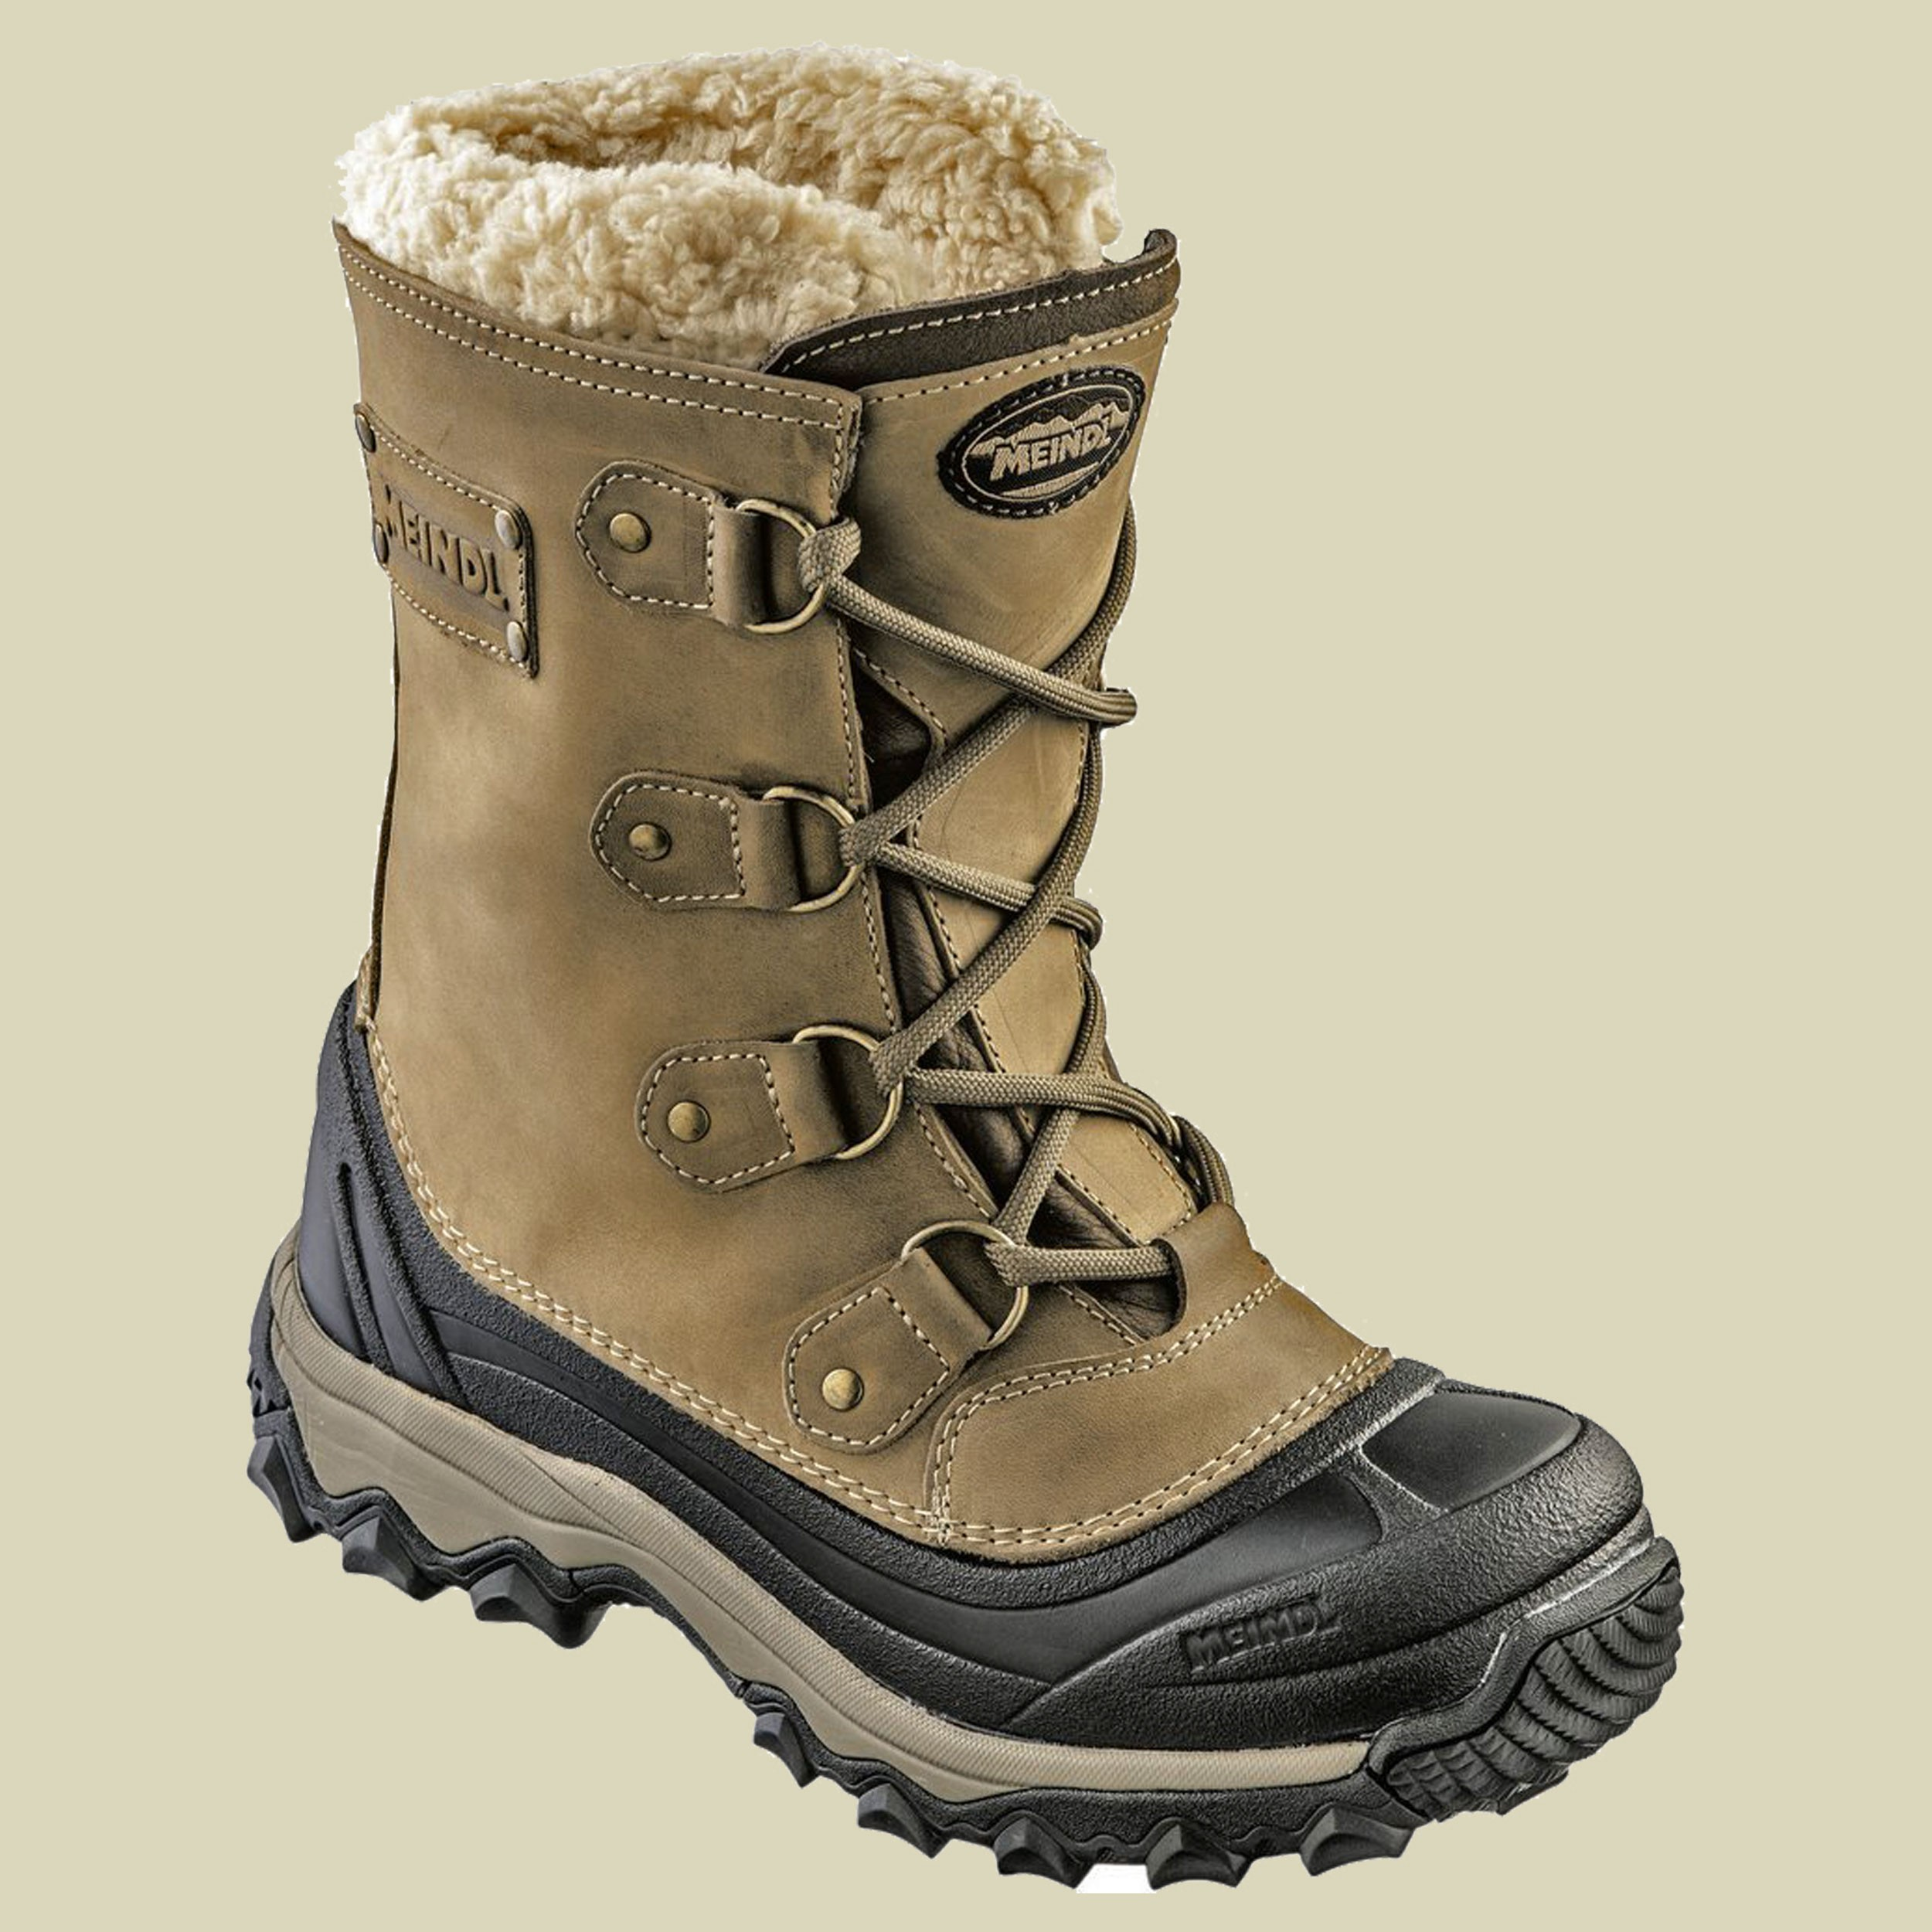 Winterstiefel Damen 2015 Aosta Lady